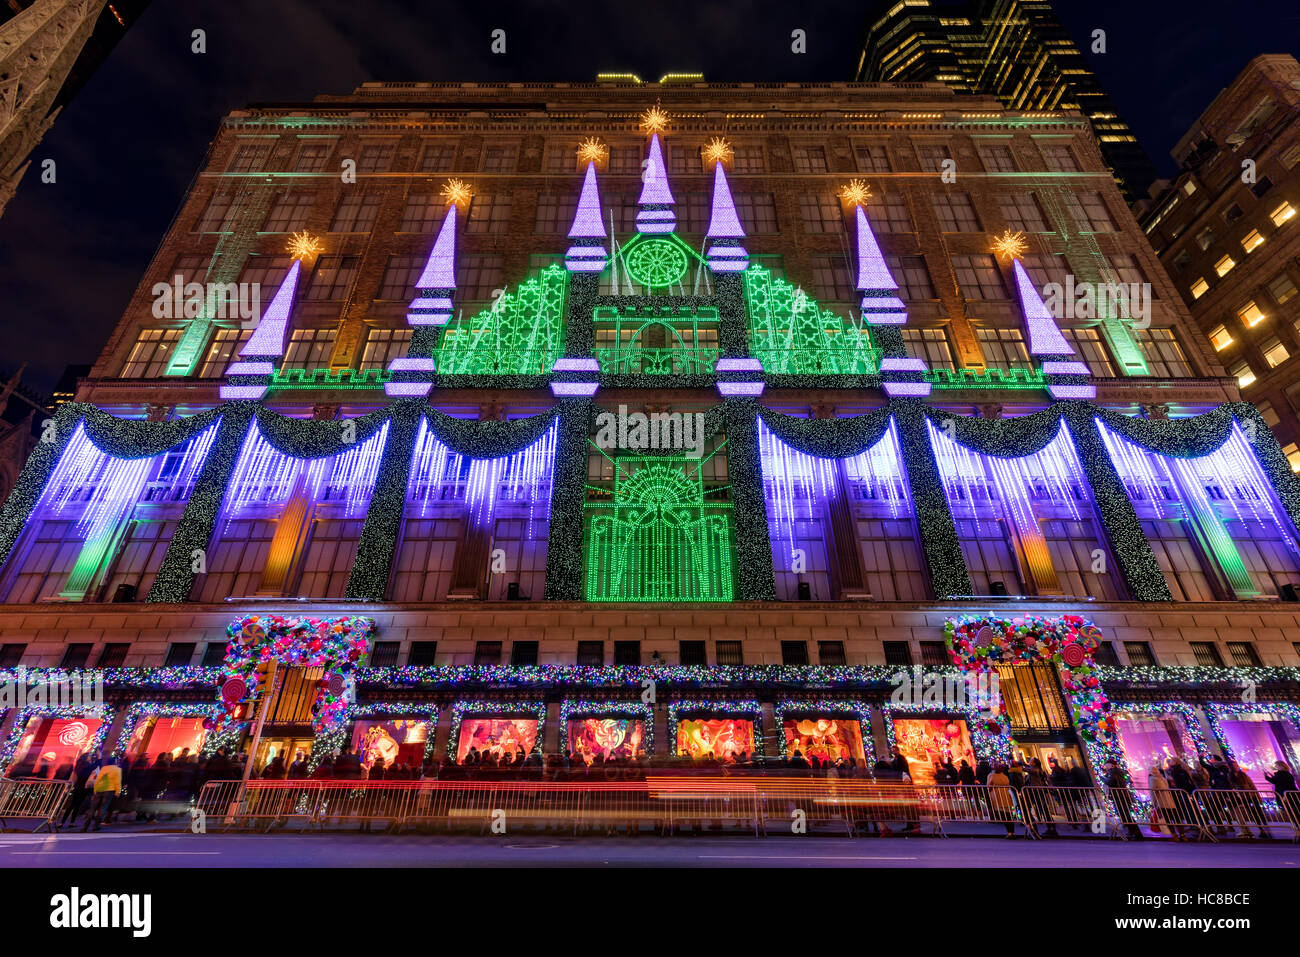 Saks Fifth Avenue Light Show 2019 Schedule Saks Fifth Avenue with Christmas light show and holiday season